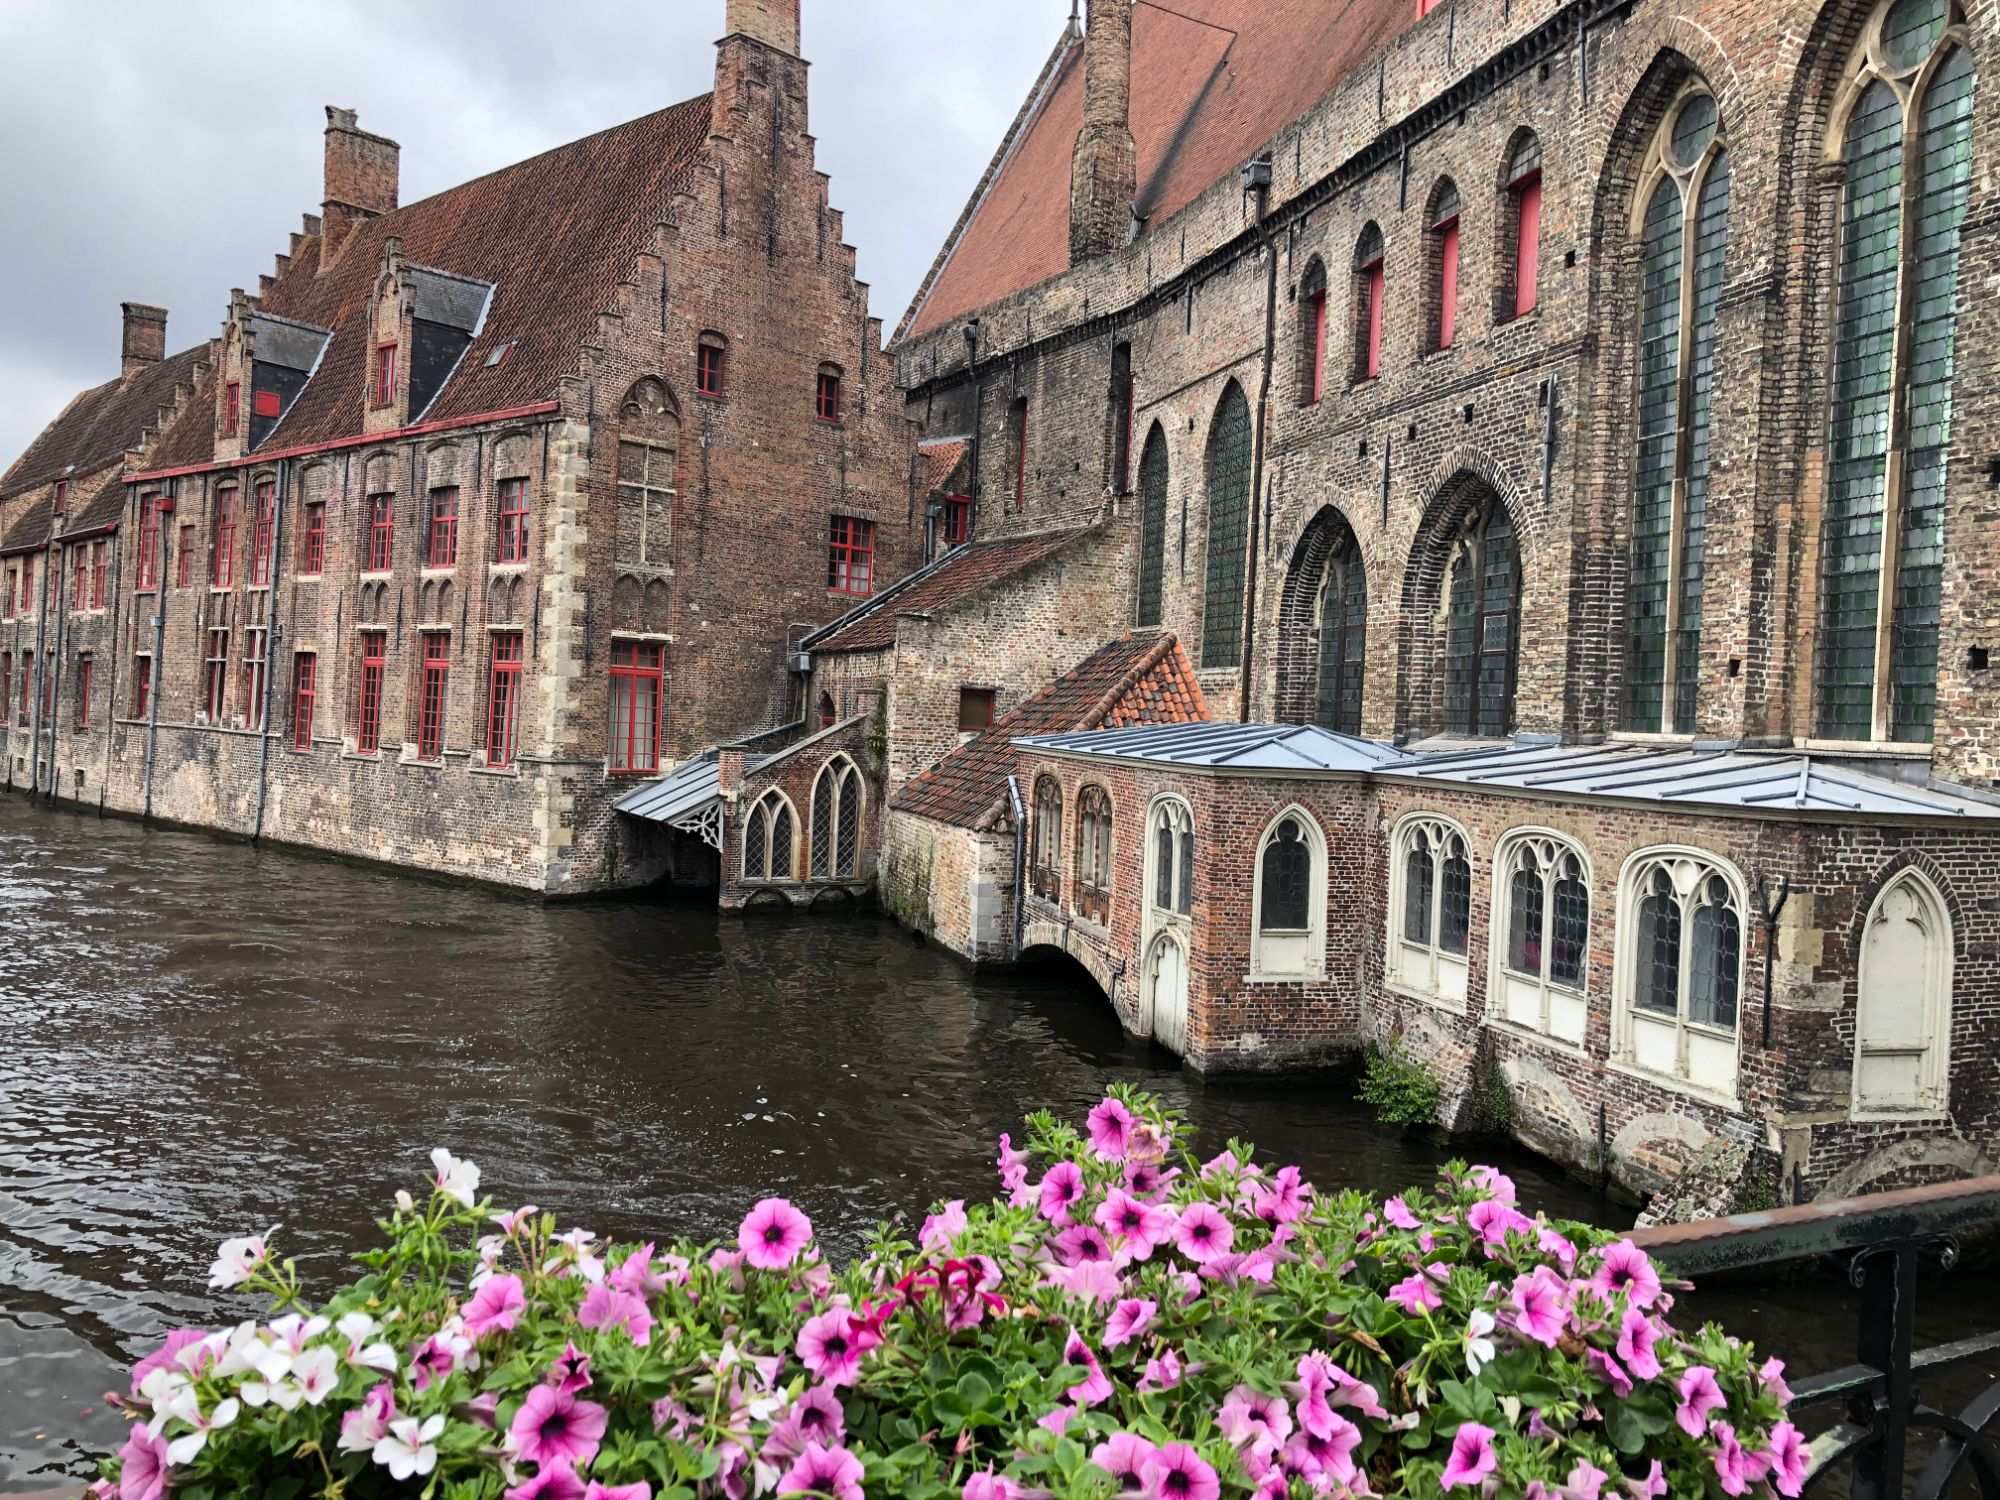 Free stock photo Bruges Belgium canal architecture buildings